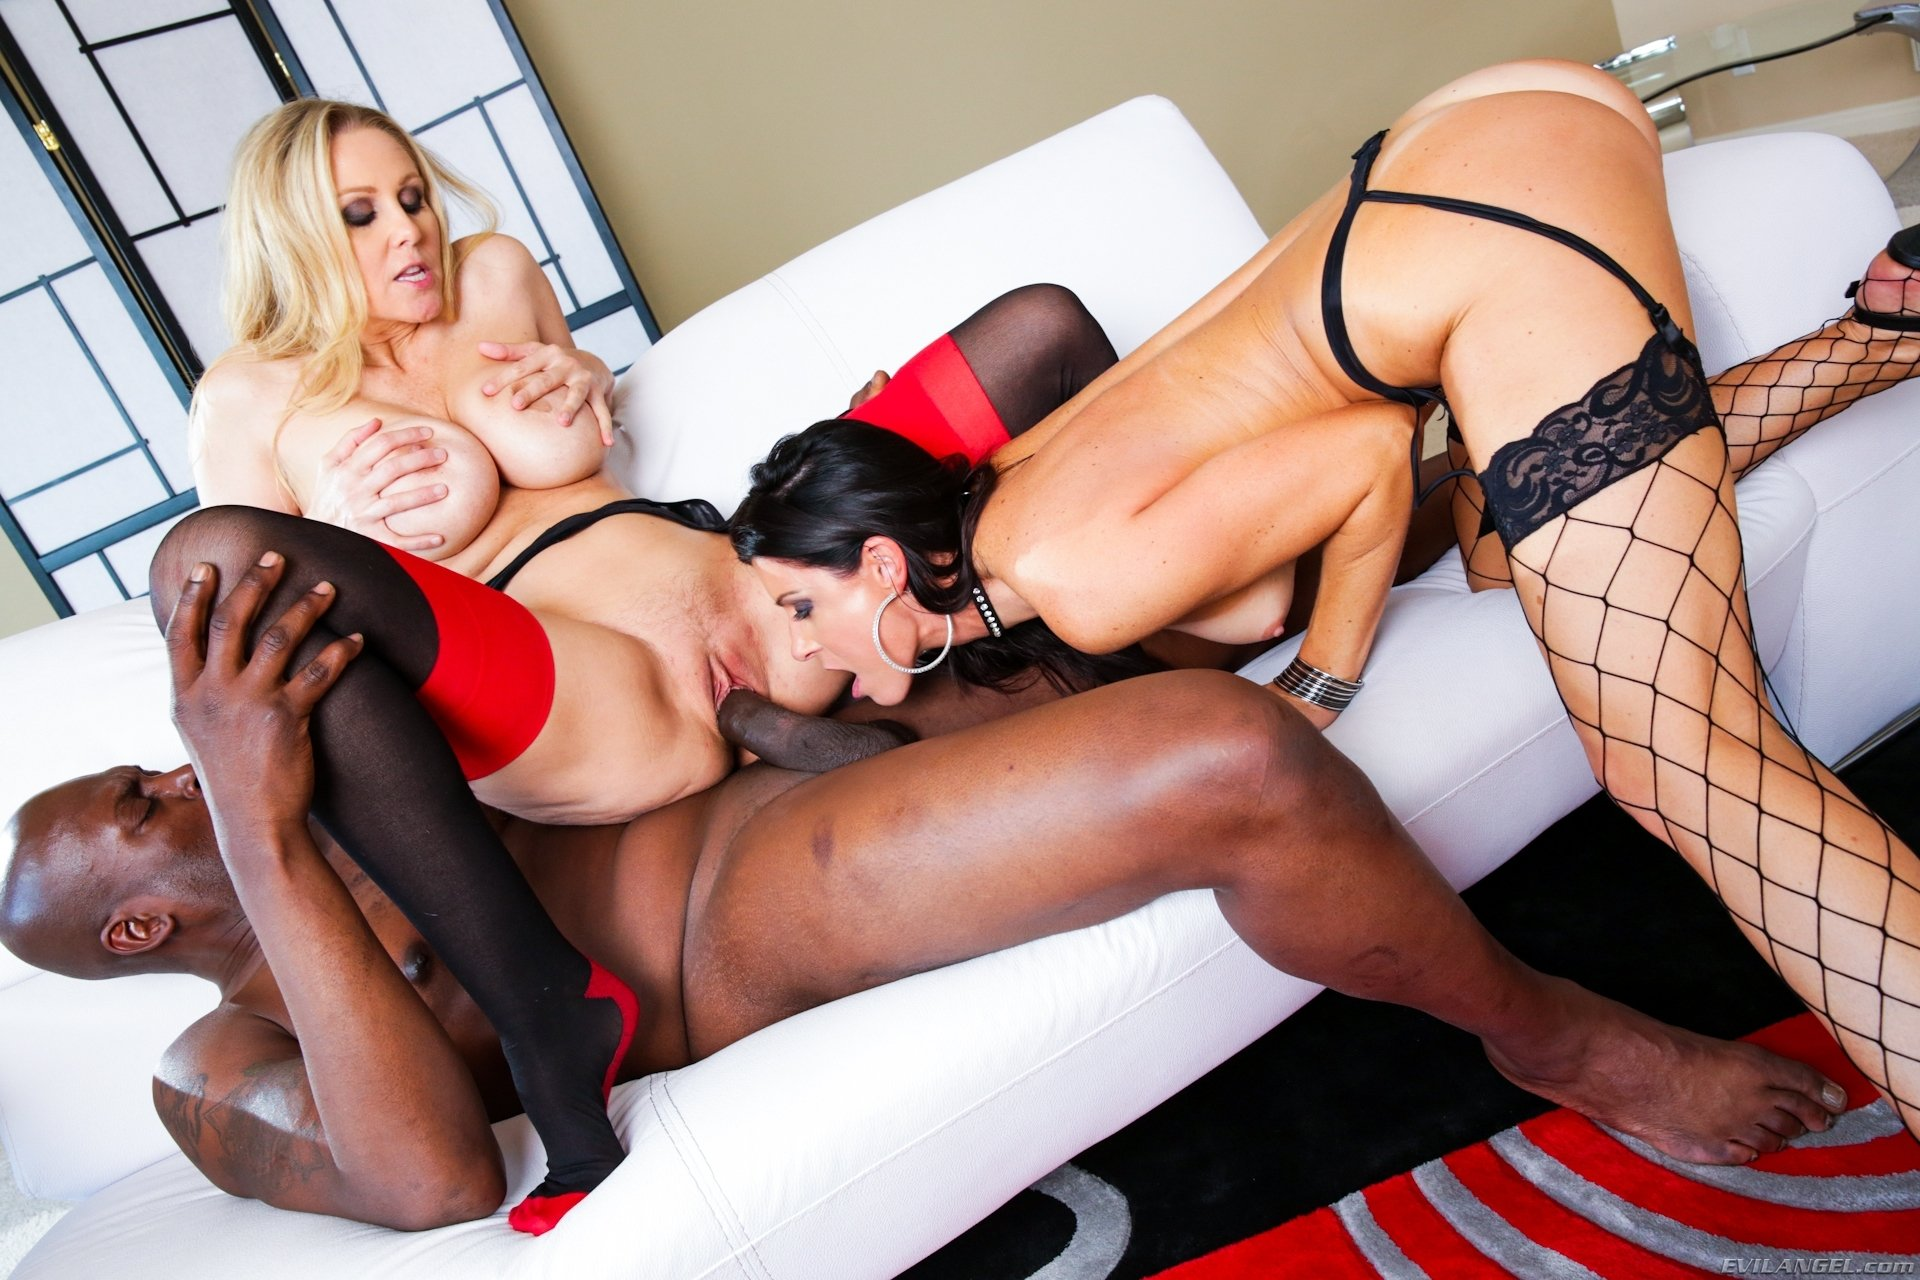 Cleaning apartments for special needs adults in a home ebony girl interracial